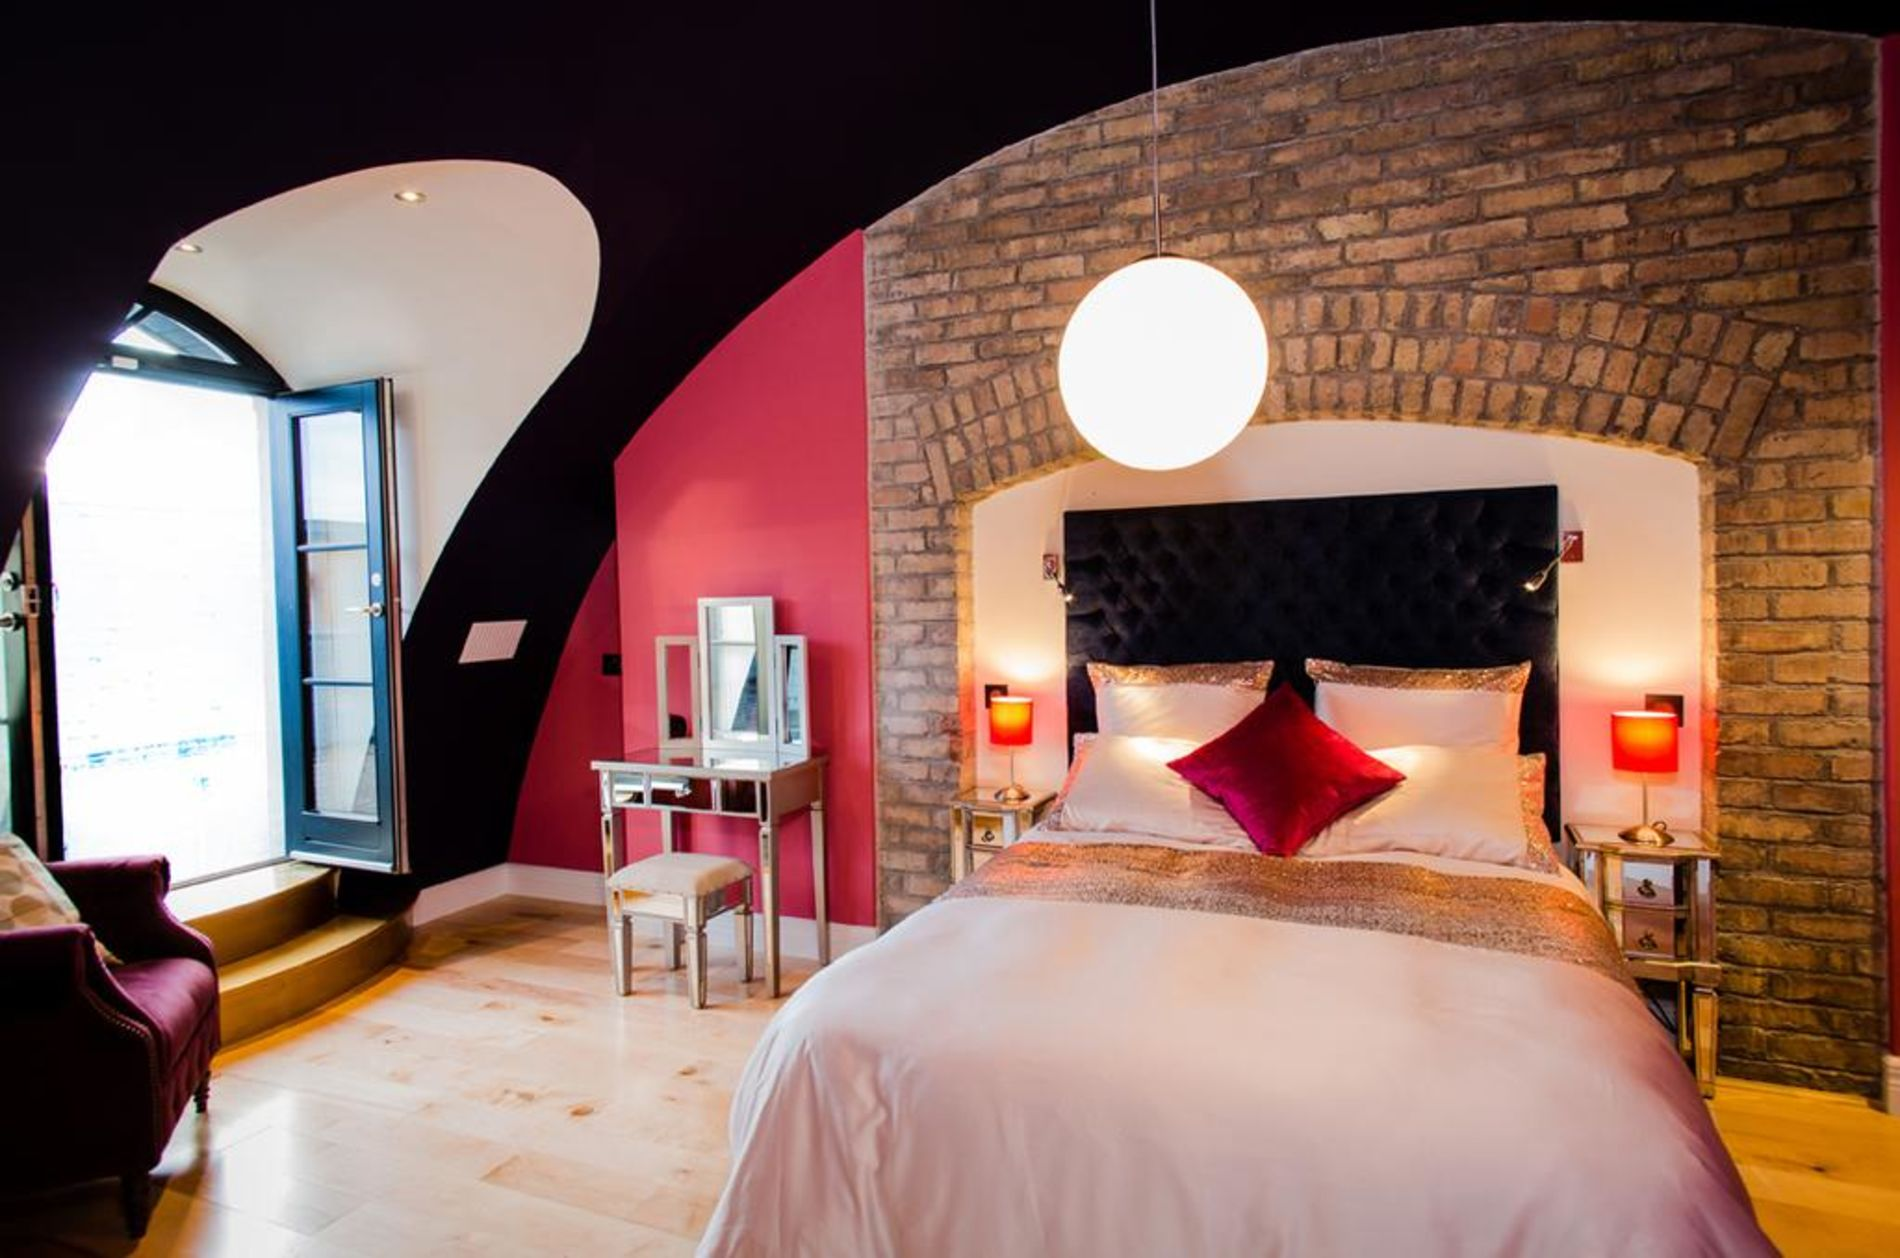 Corporate Luxury Apartment in the heart of Grand Canal Dock, Dublin